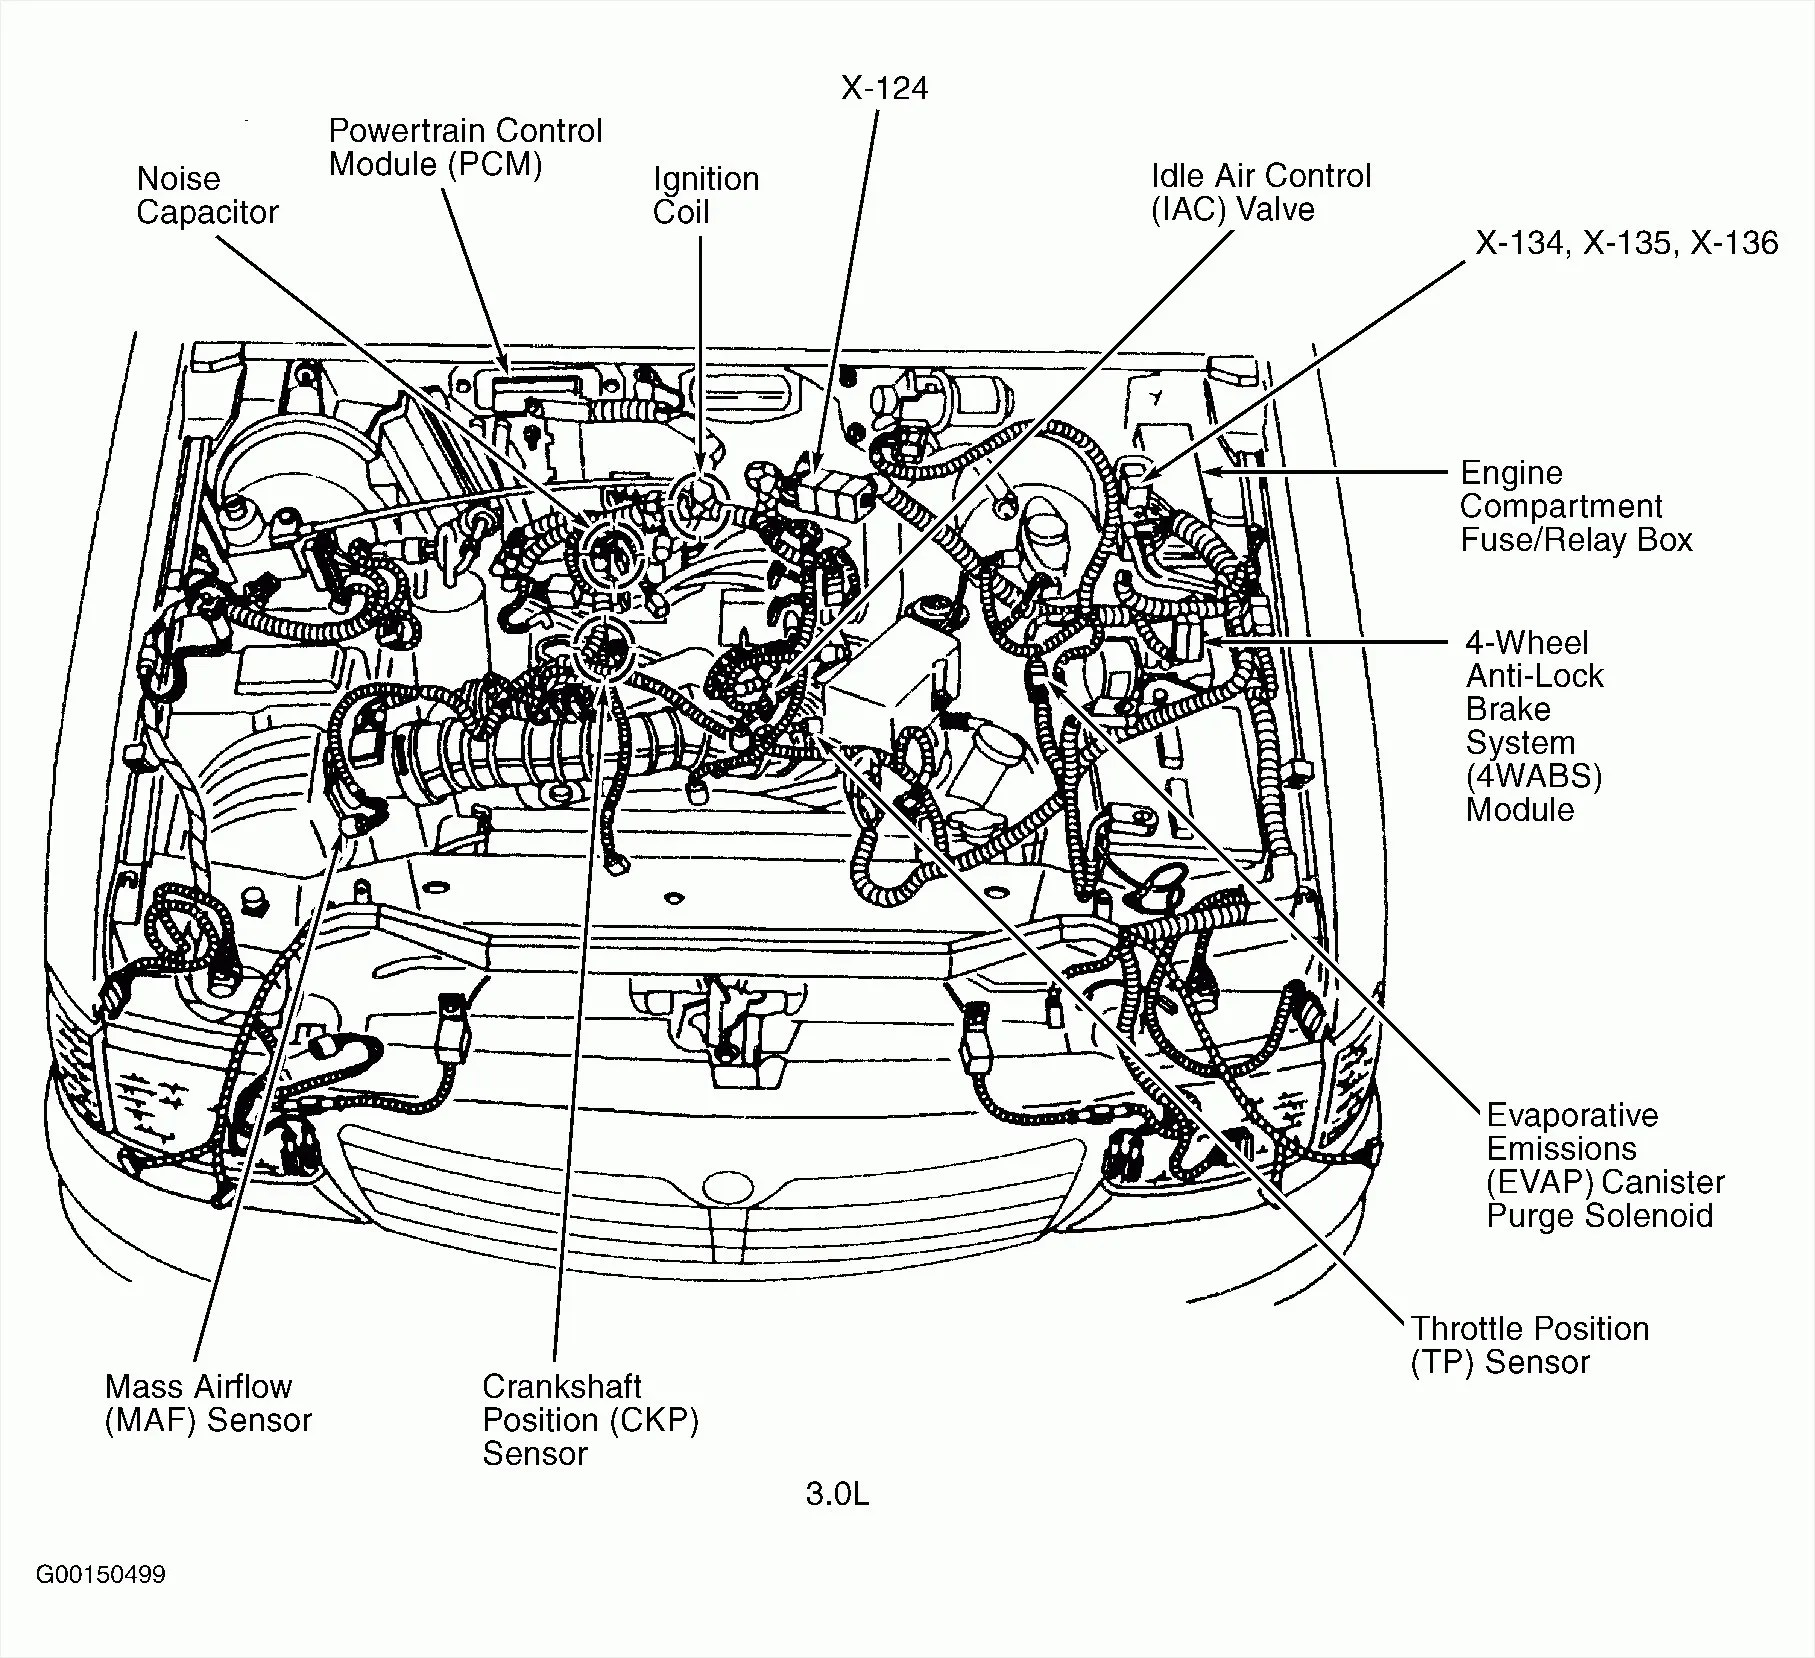 hight resolution of pontiac grand am engine diagram wiring diagram used 94 grand am engine diagram